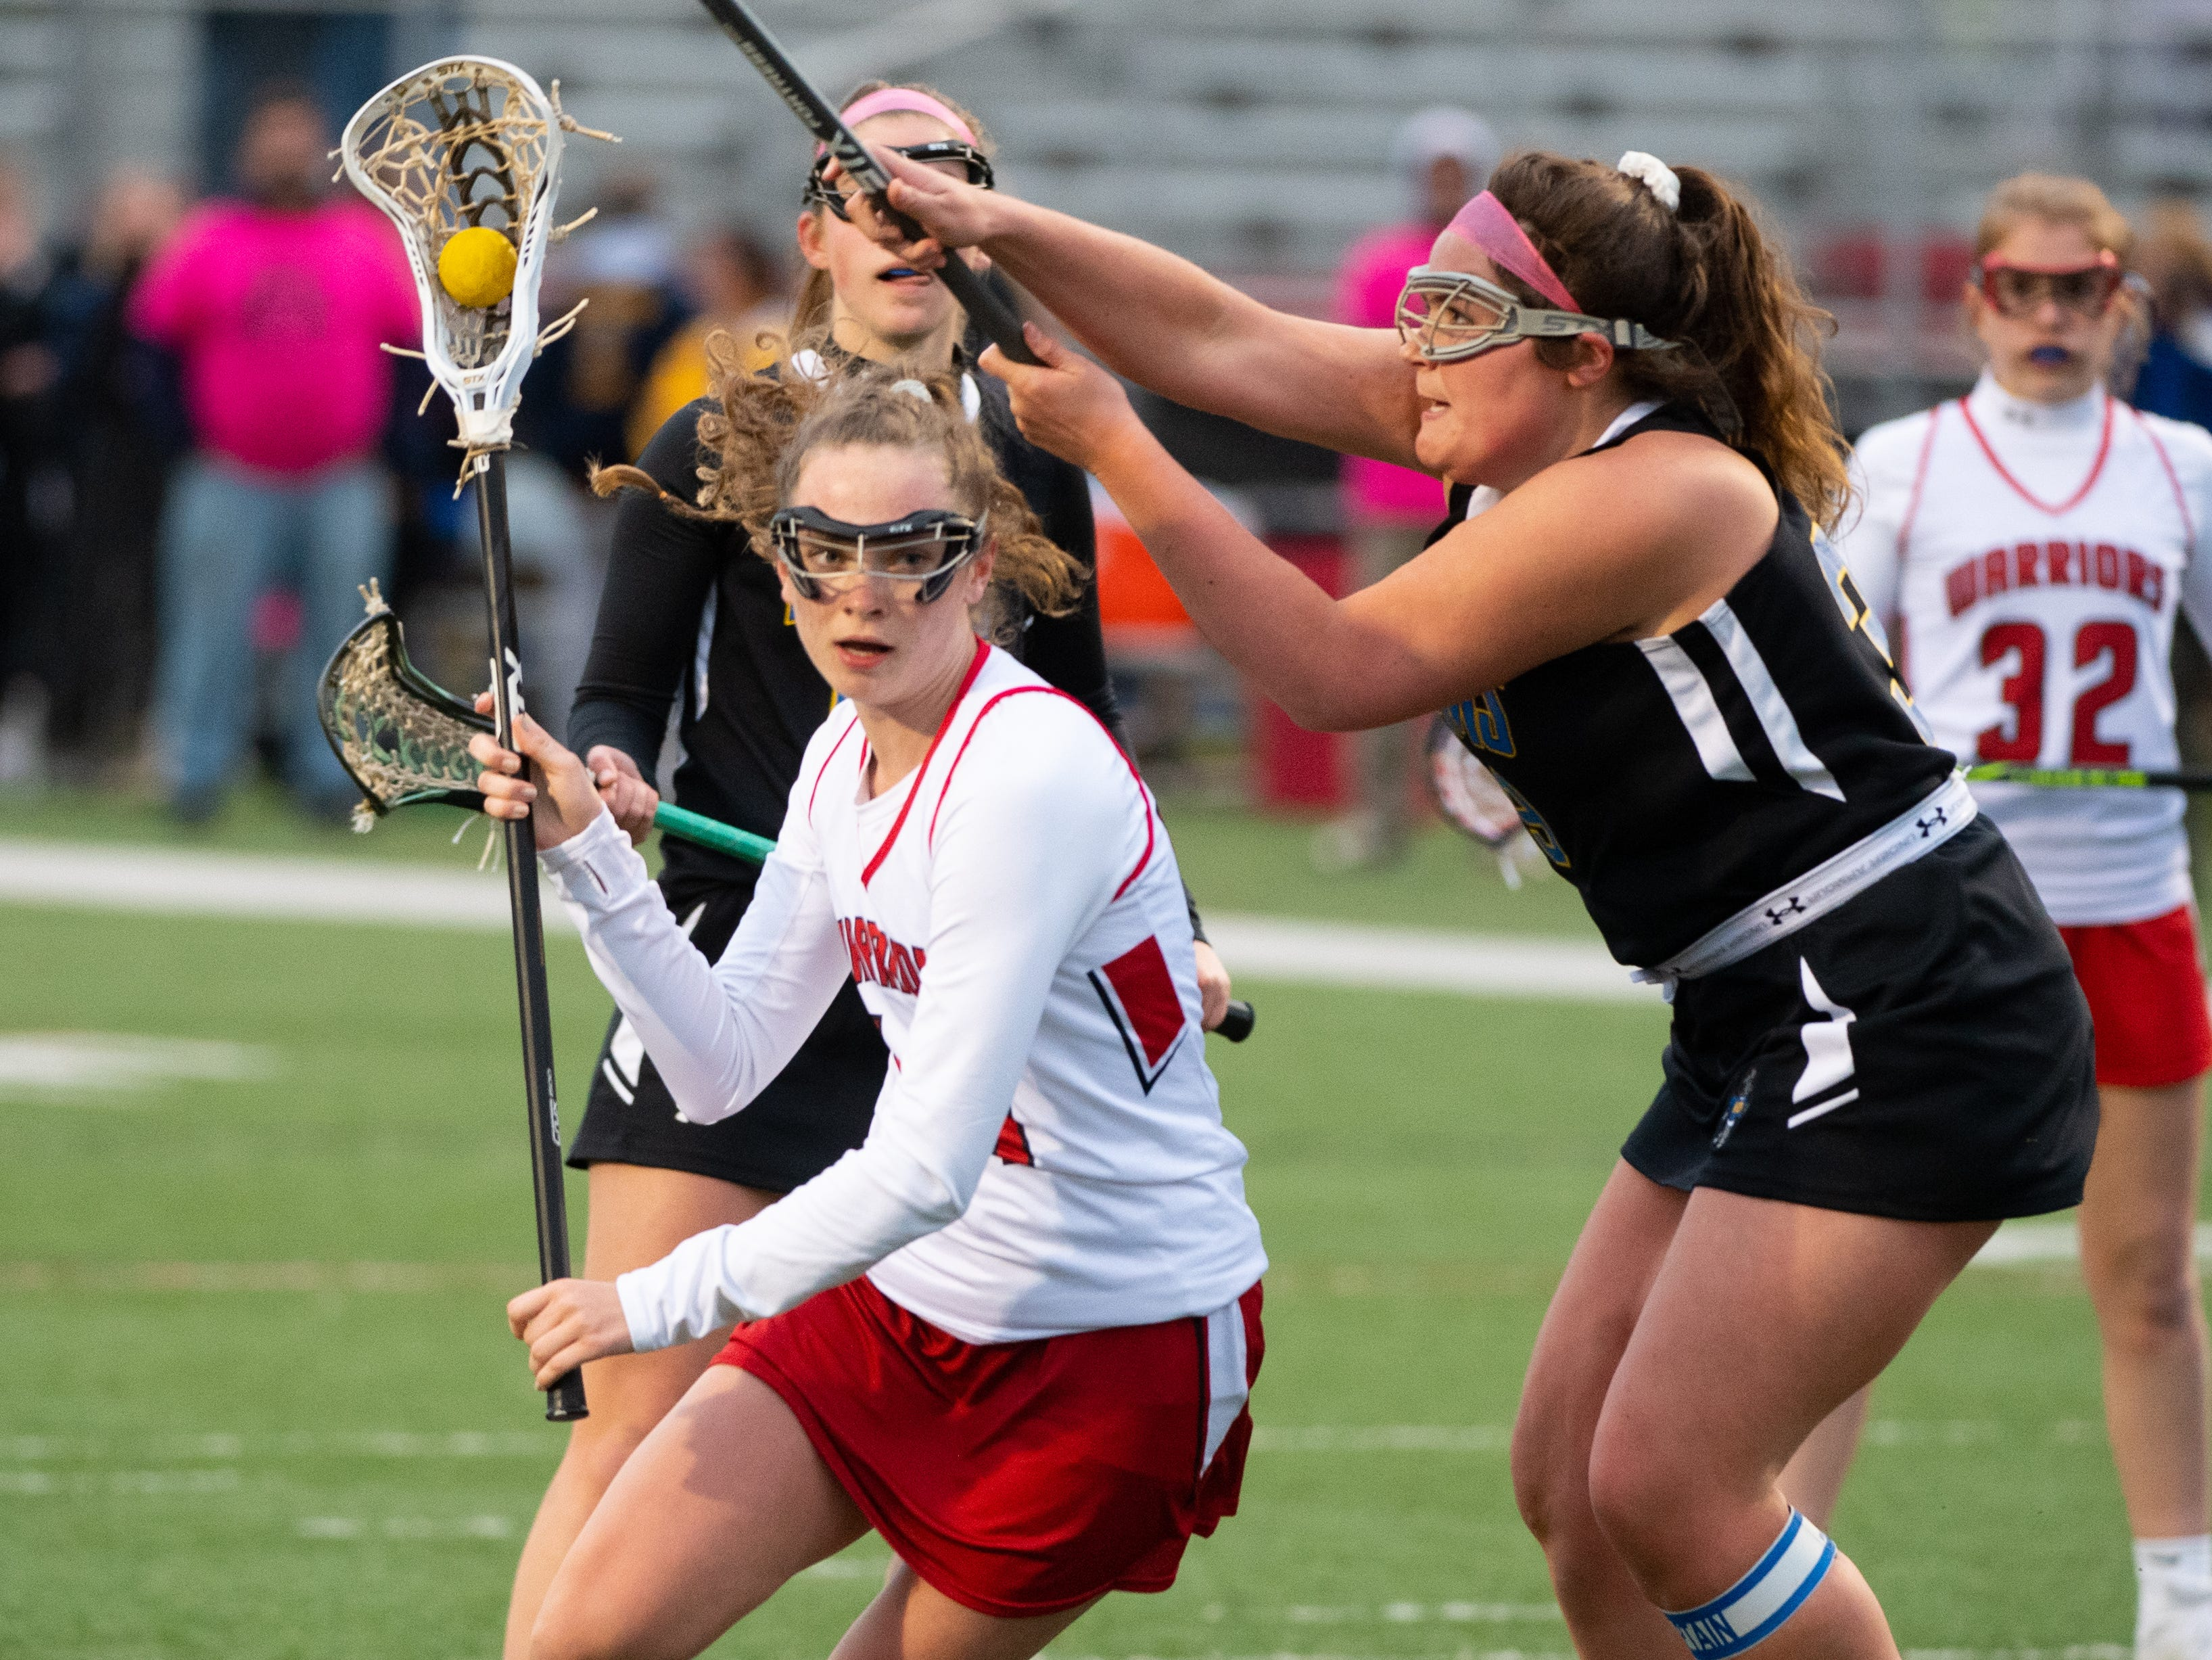 Rachel Oestrike (41) heads towards goal during the girls' lacrosse game between Susquehannock and Kennard-Dale, April 2, 2019 at Susquehannock High School. The Rams defeated the Warriors 17 to 2.